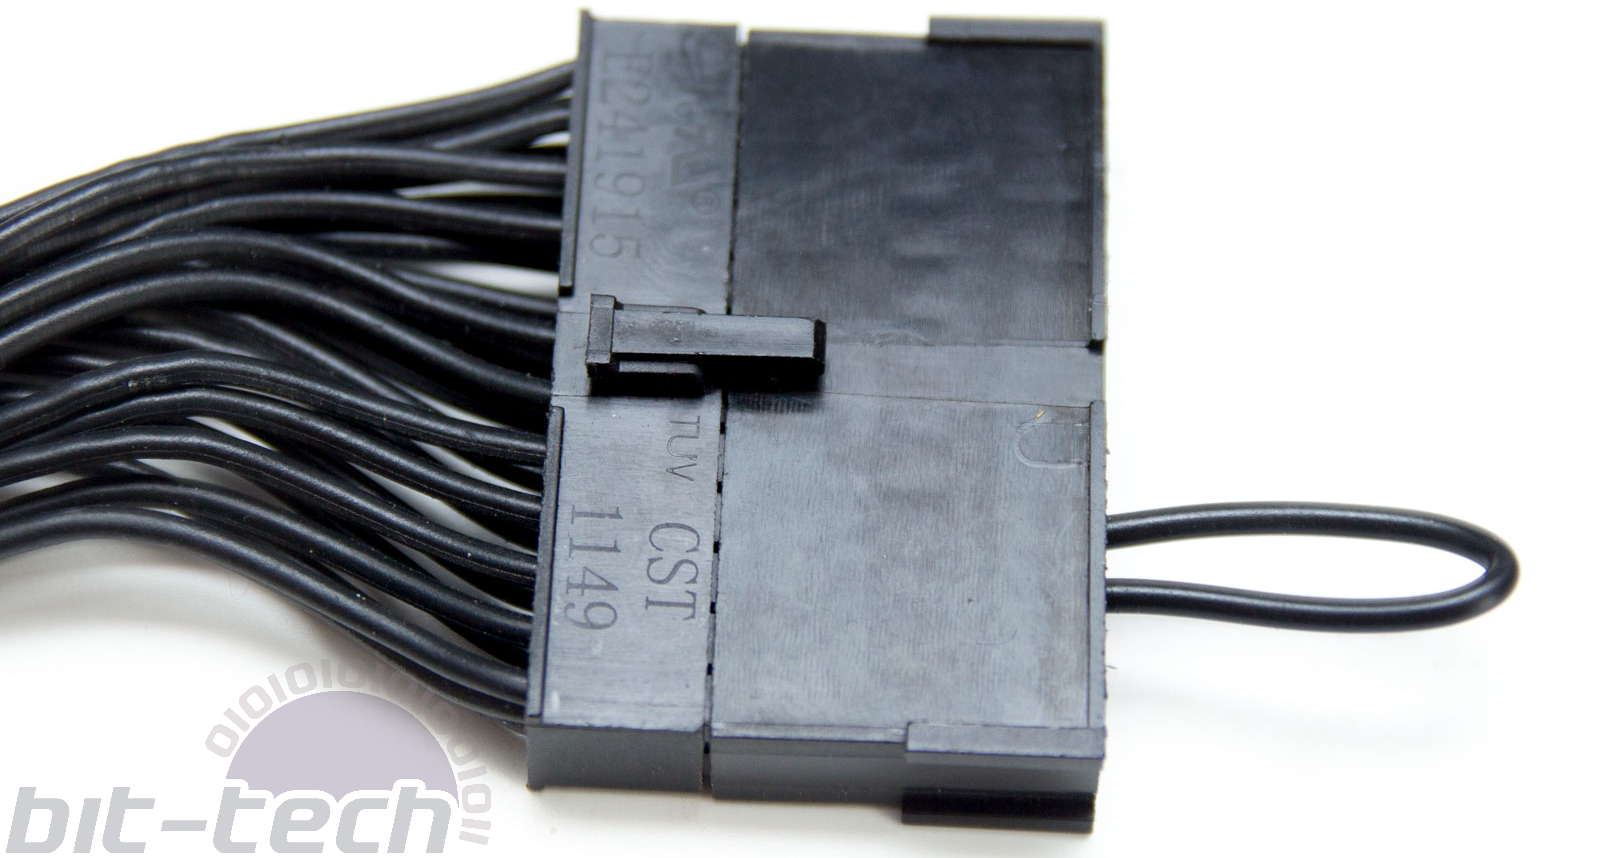 How To Jump A Psu Ac Plug Wiring Without The Metals These Jumpers Can Be Bought For Just 2 Excluding Delivery So Are Only Really Cost Effective If You Have Tools Already Or Youre About Order